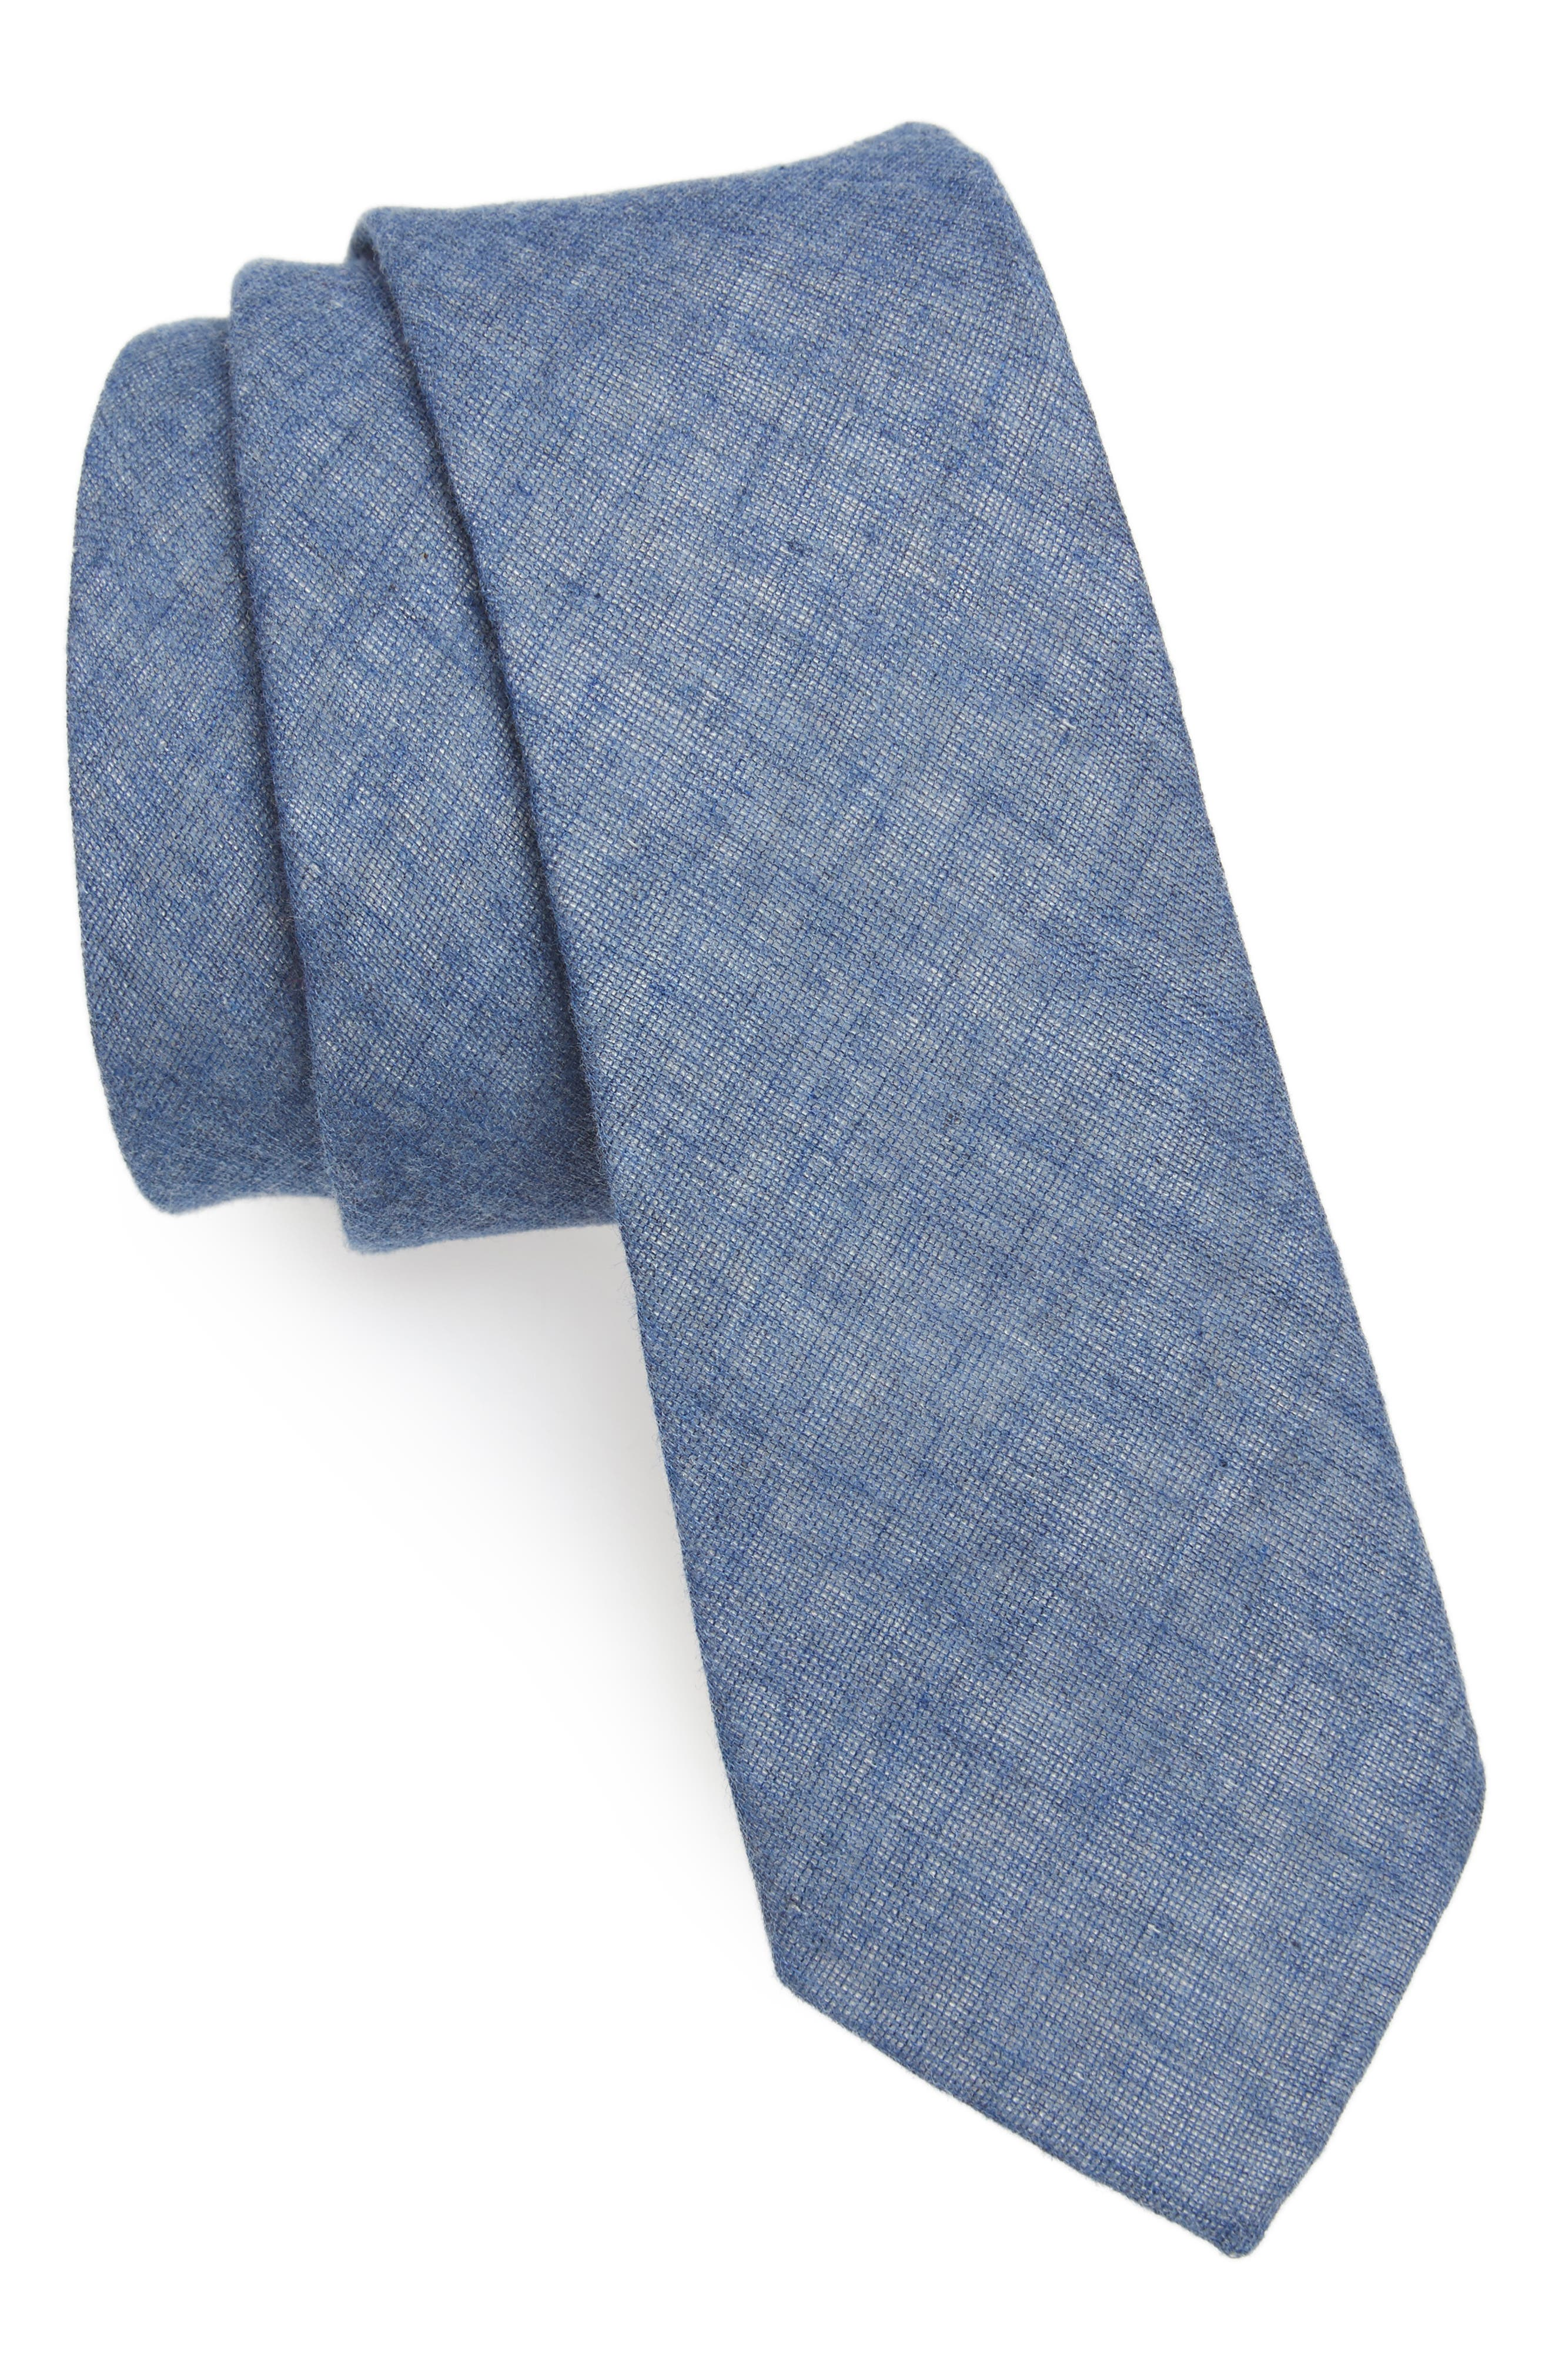 Main Image - 1901 Bedell Solid Cotton Tie